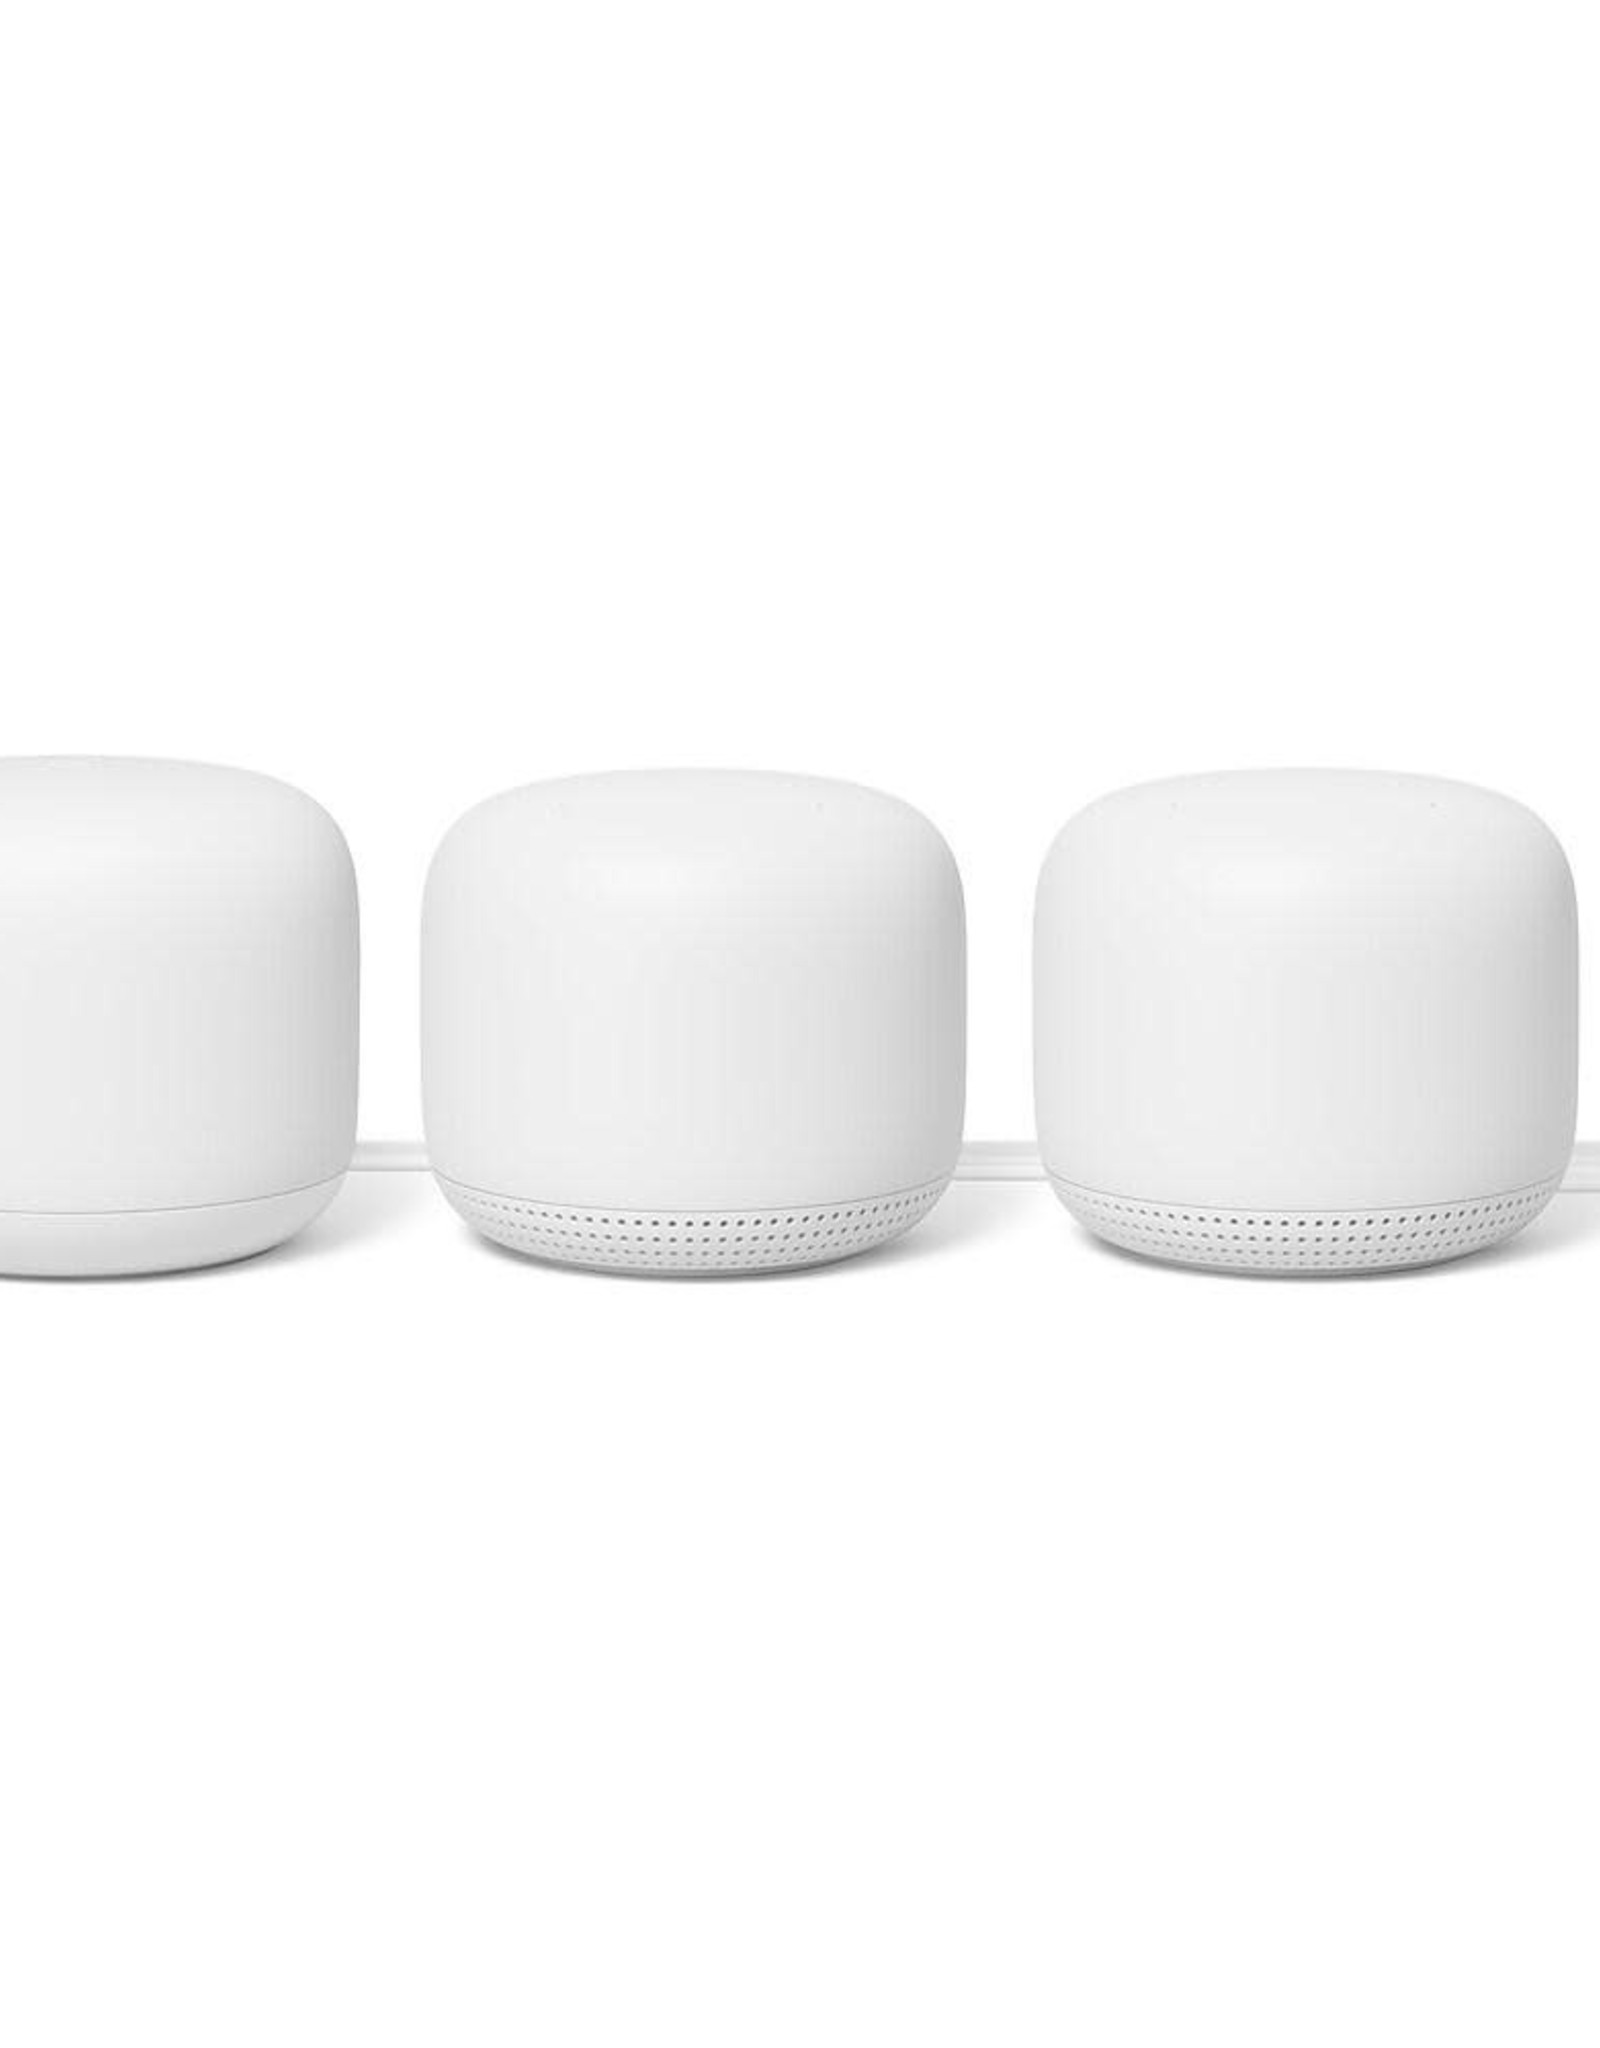 Google Google Nest Wifi Router with 2 Points - 3 Pack GA00823-CA